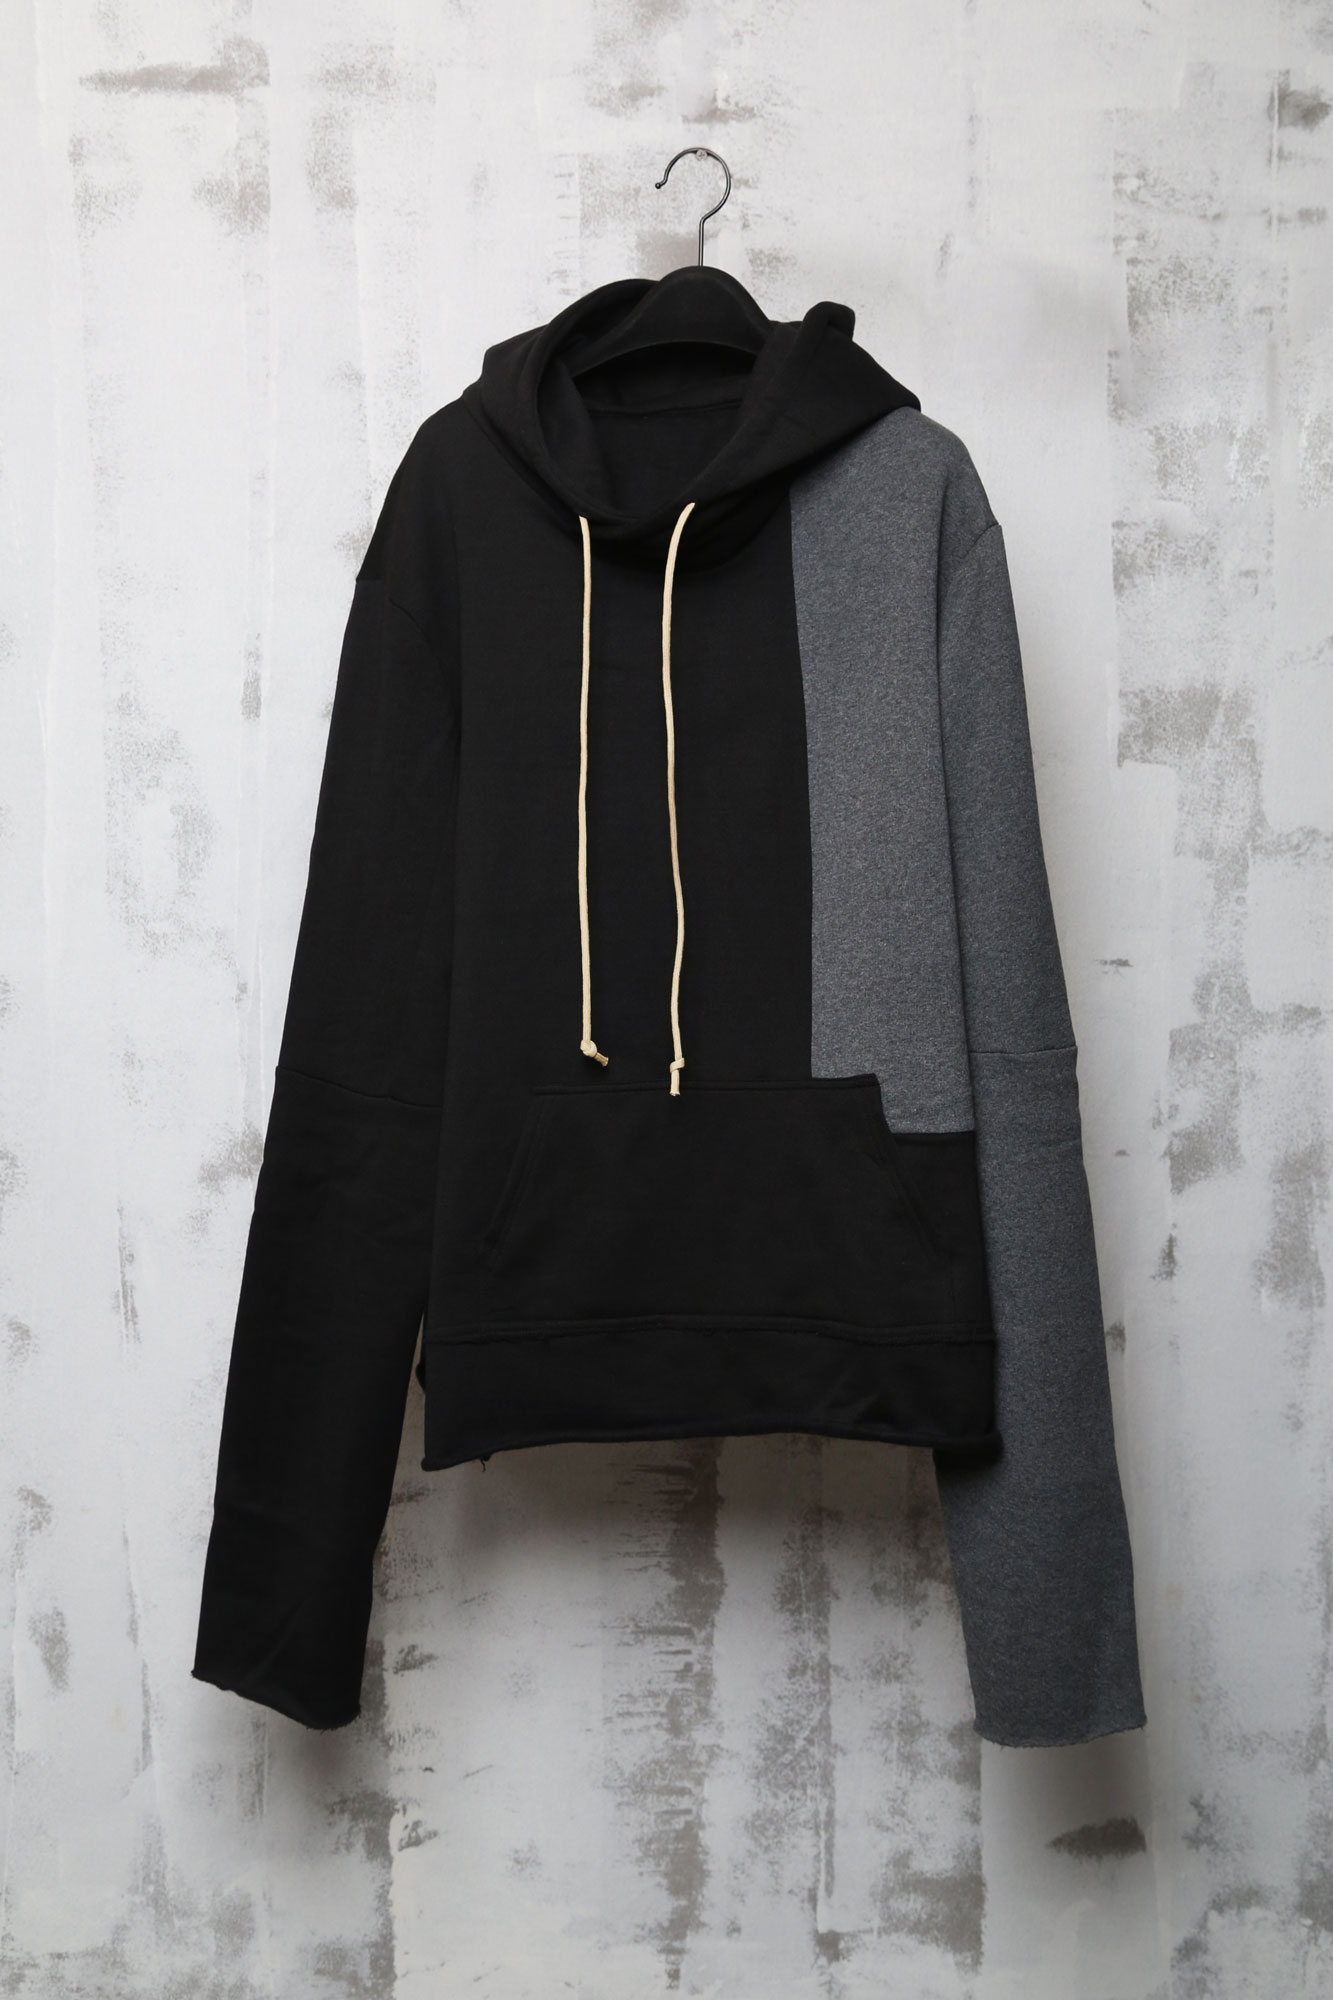 Now Online: PAUSE x Rabbithole London Hoodie Collaboration